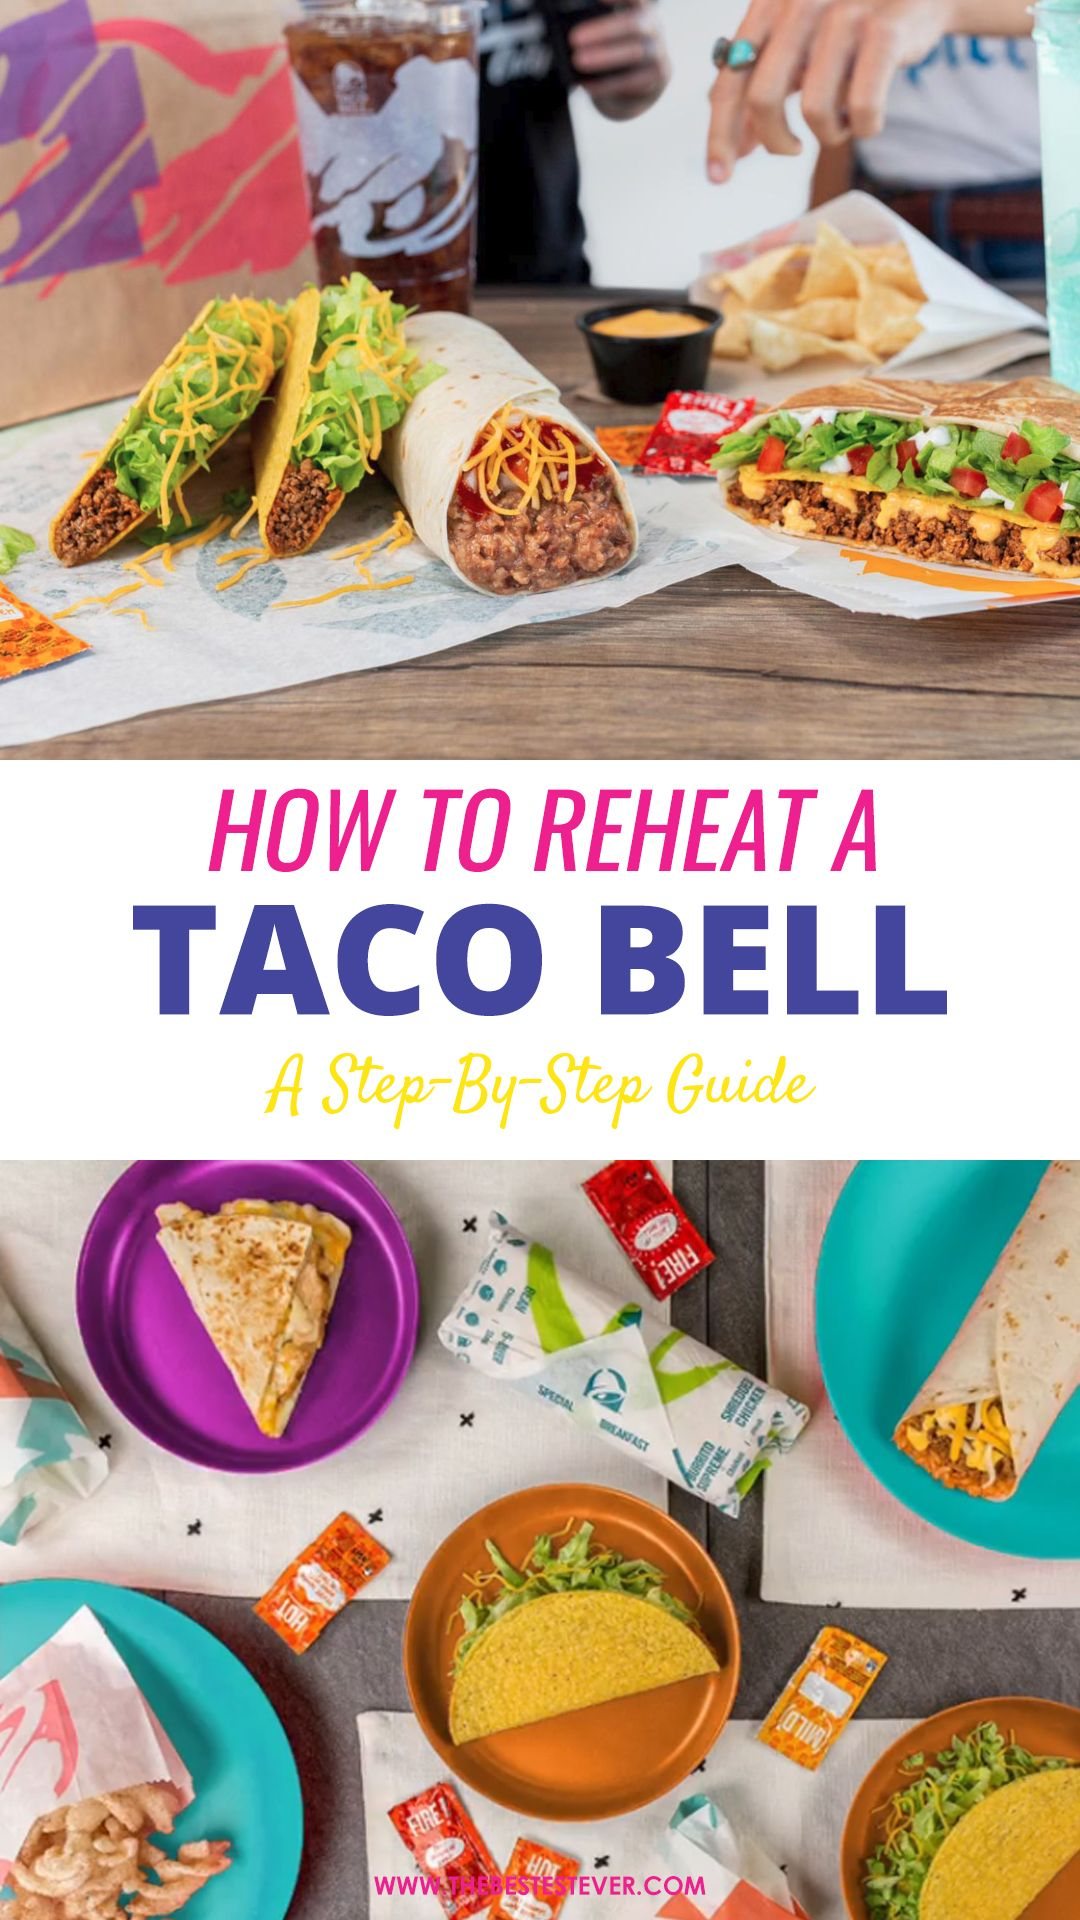 How To Reheat Taco Bell It S Difficult But Worth A Shot Taco Bell Tacos And Burritos Tacos